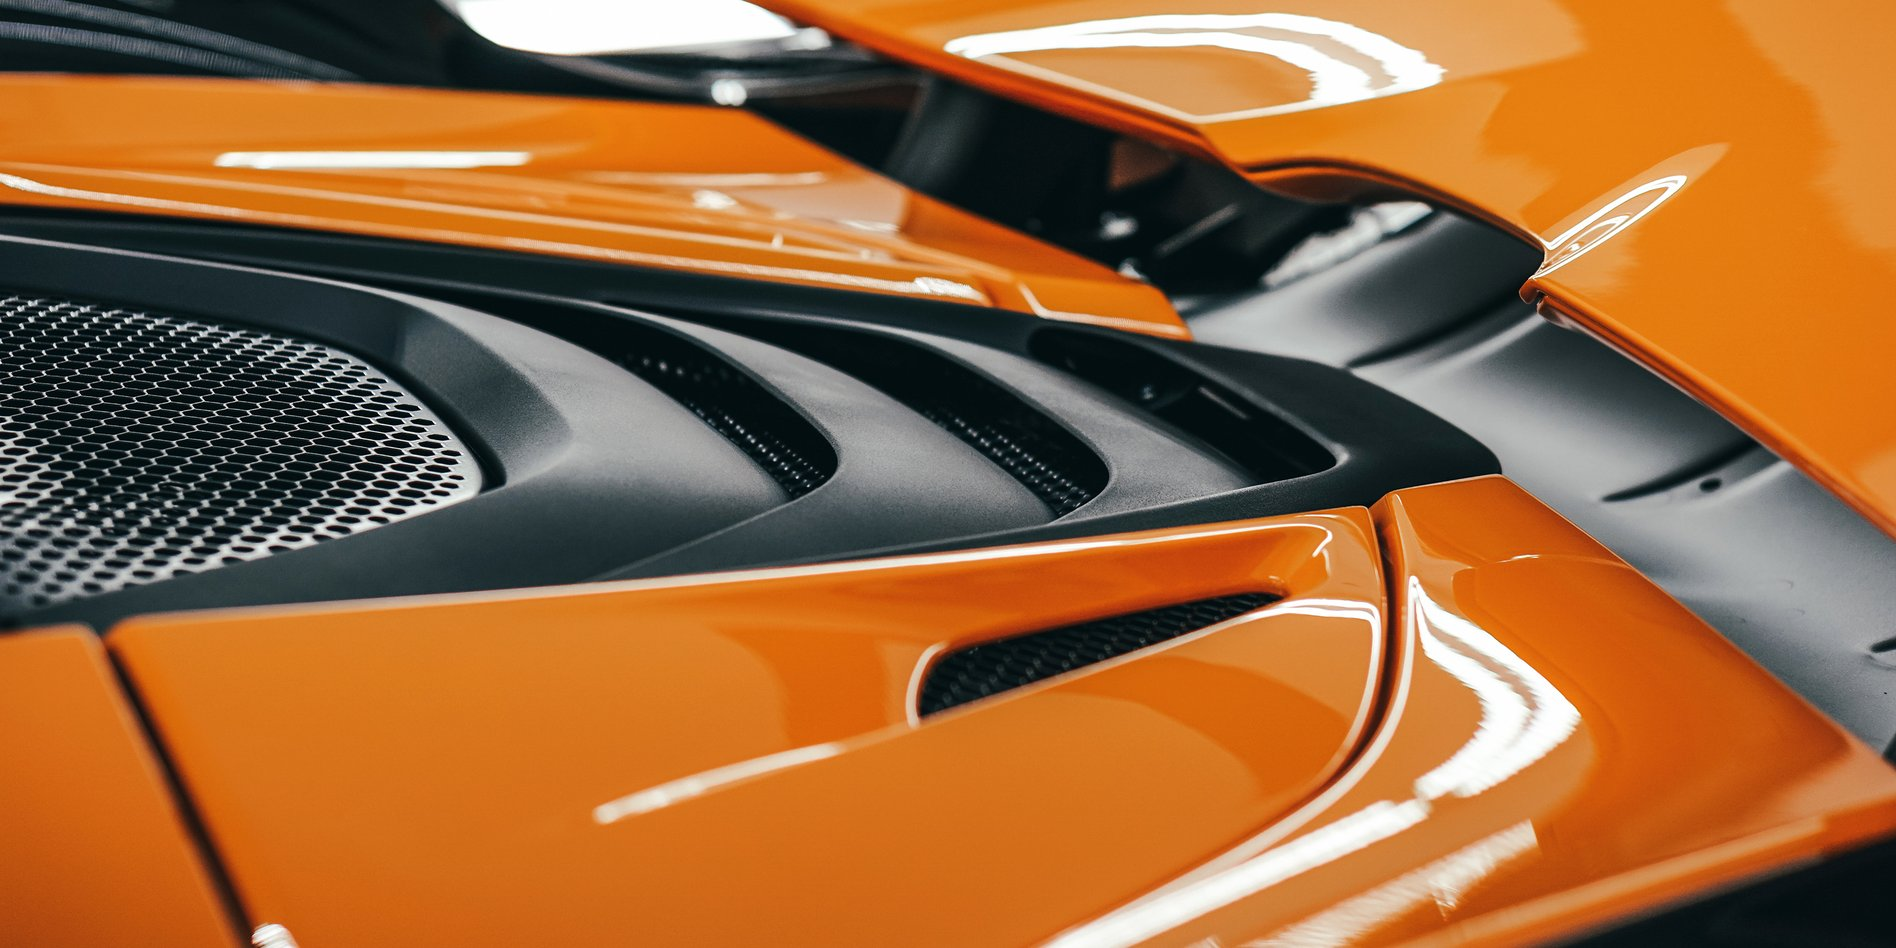 WHAT IS A CERAMIC COATING?